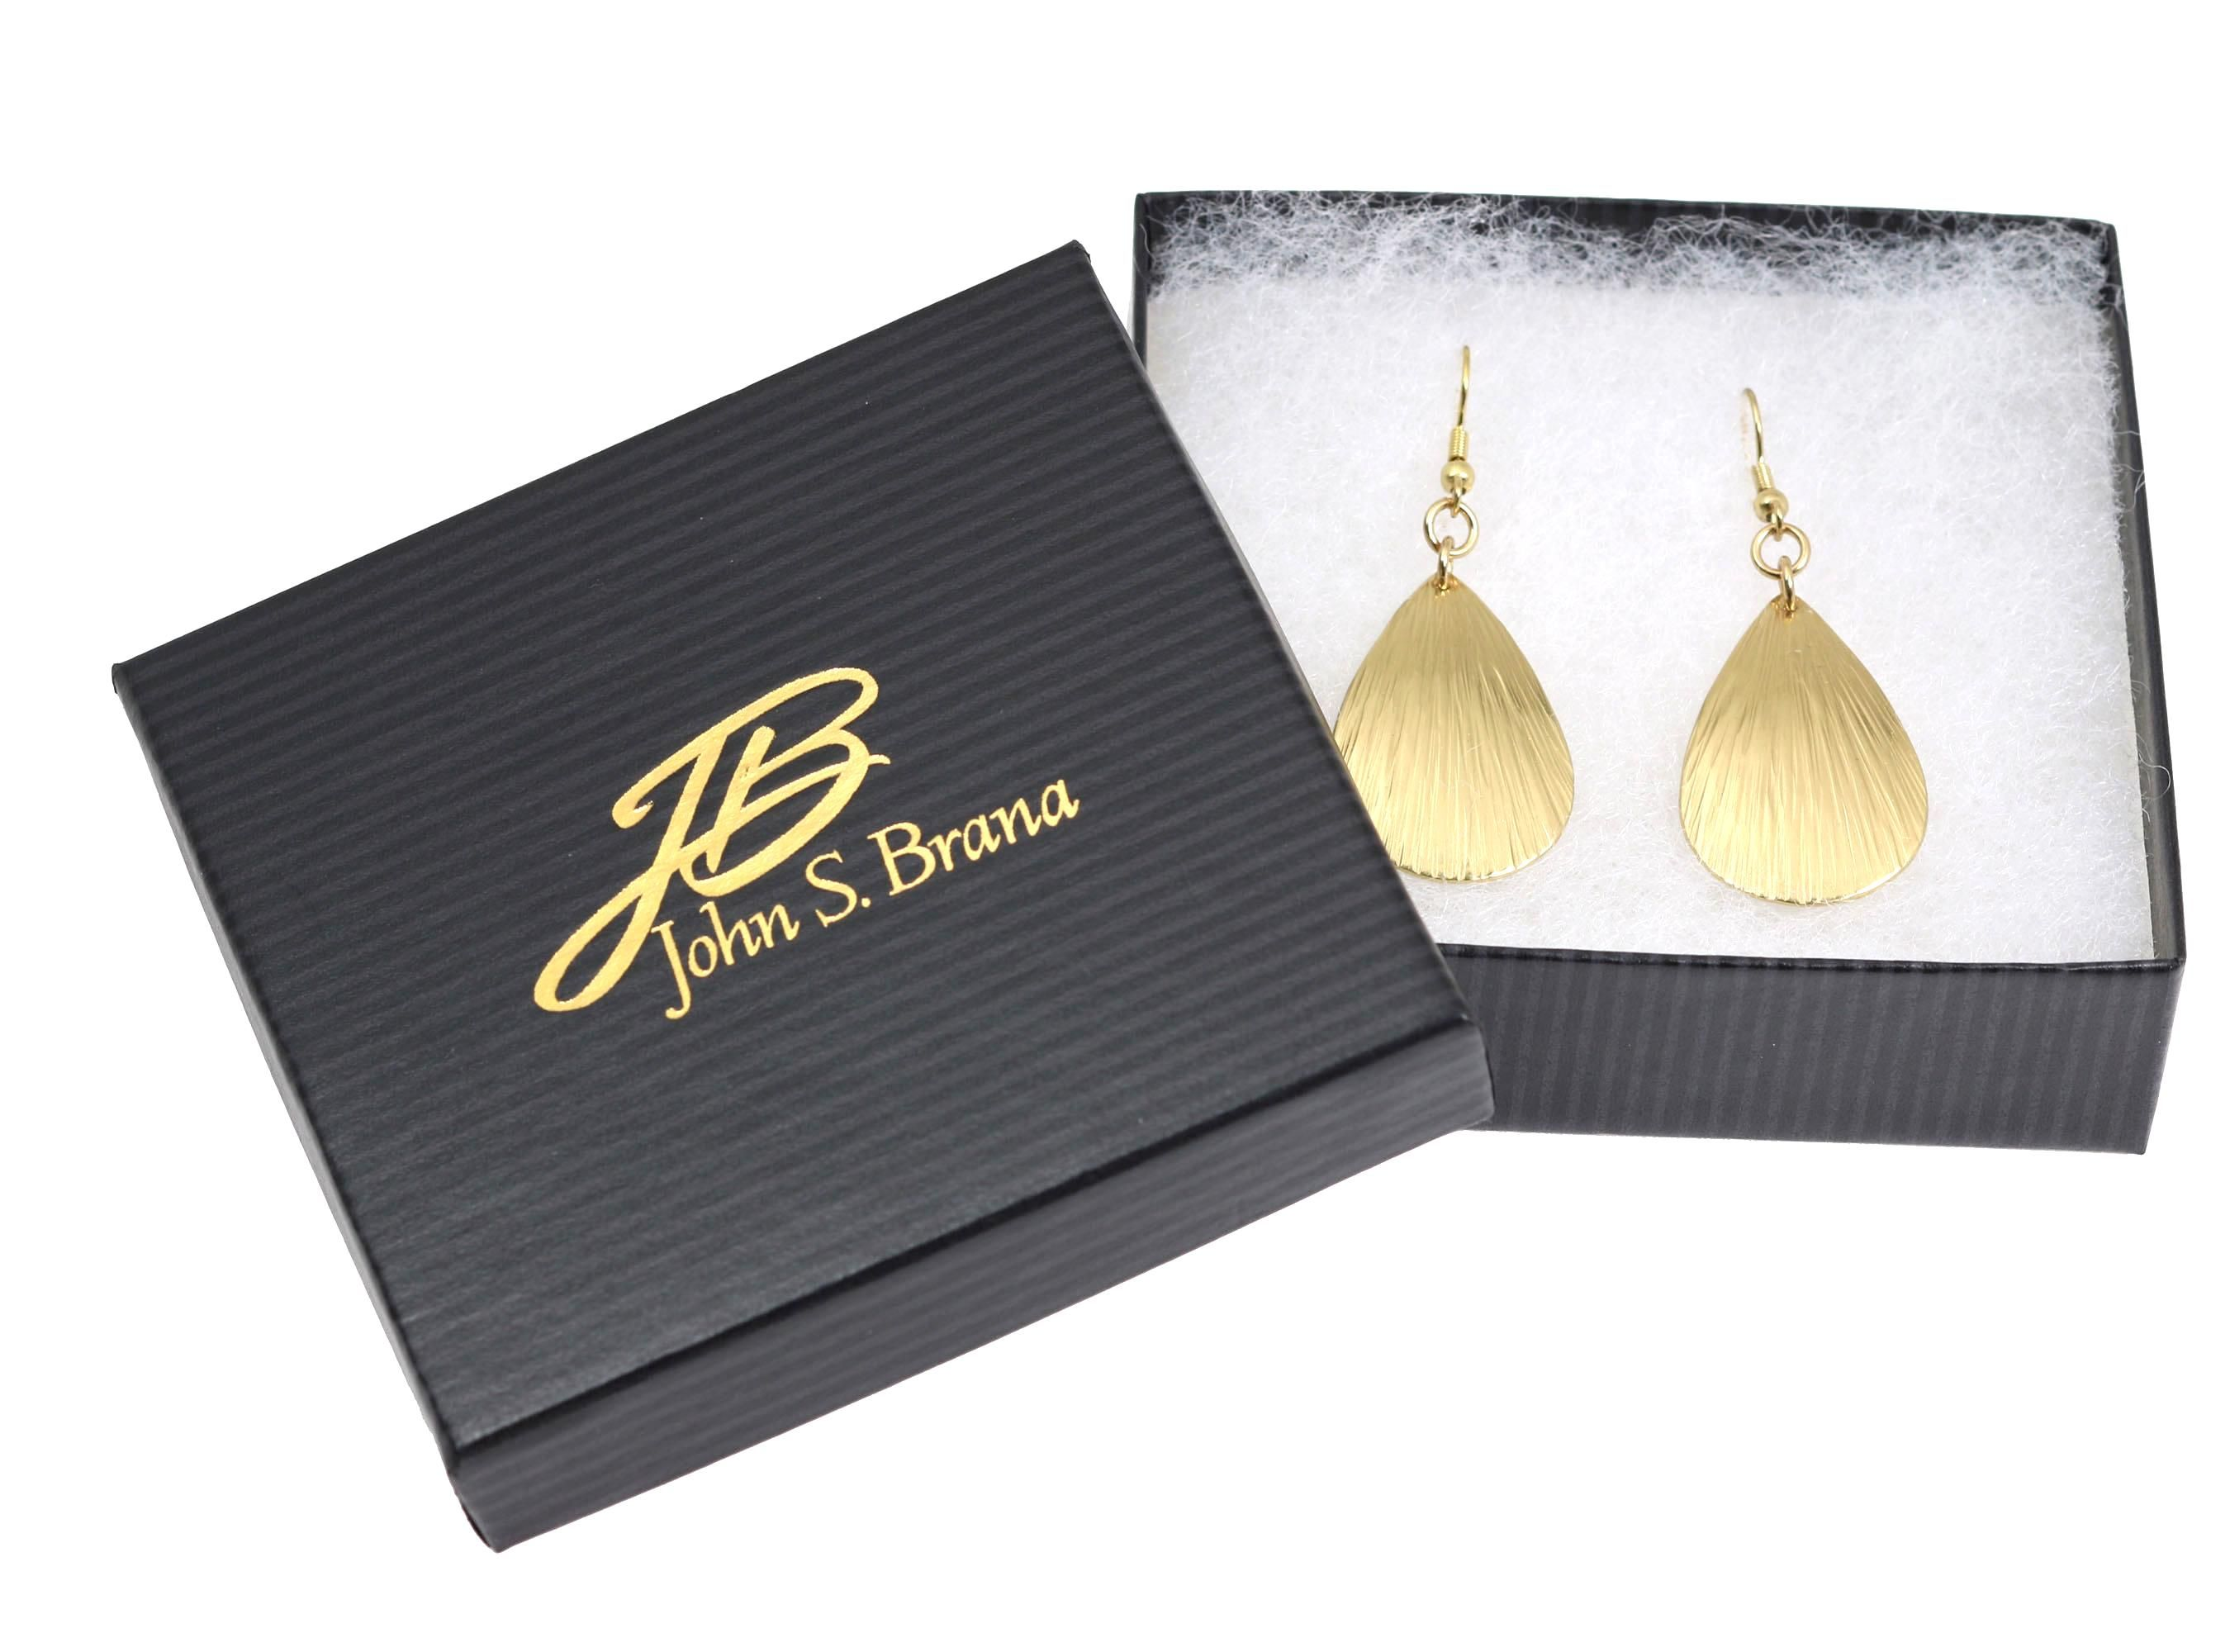 Over 30% OFF Striking Small Brass Bark Tear Drop Earrings Listed on #AmazonPrime #Earrings http://www.amazon.com/dp/B01A4MZZK8